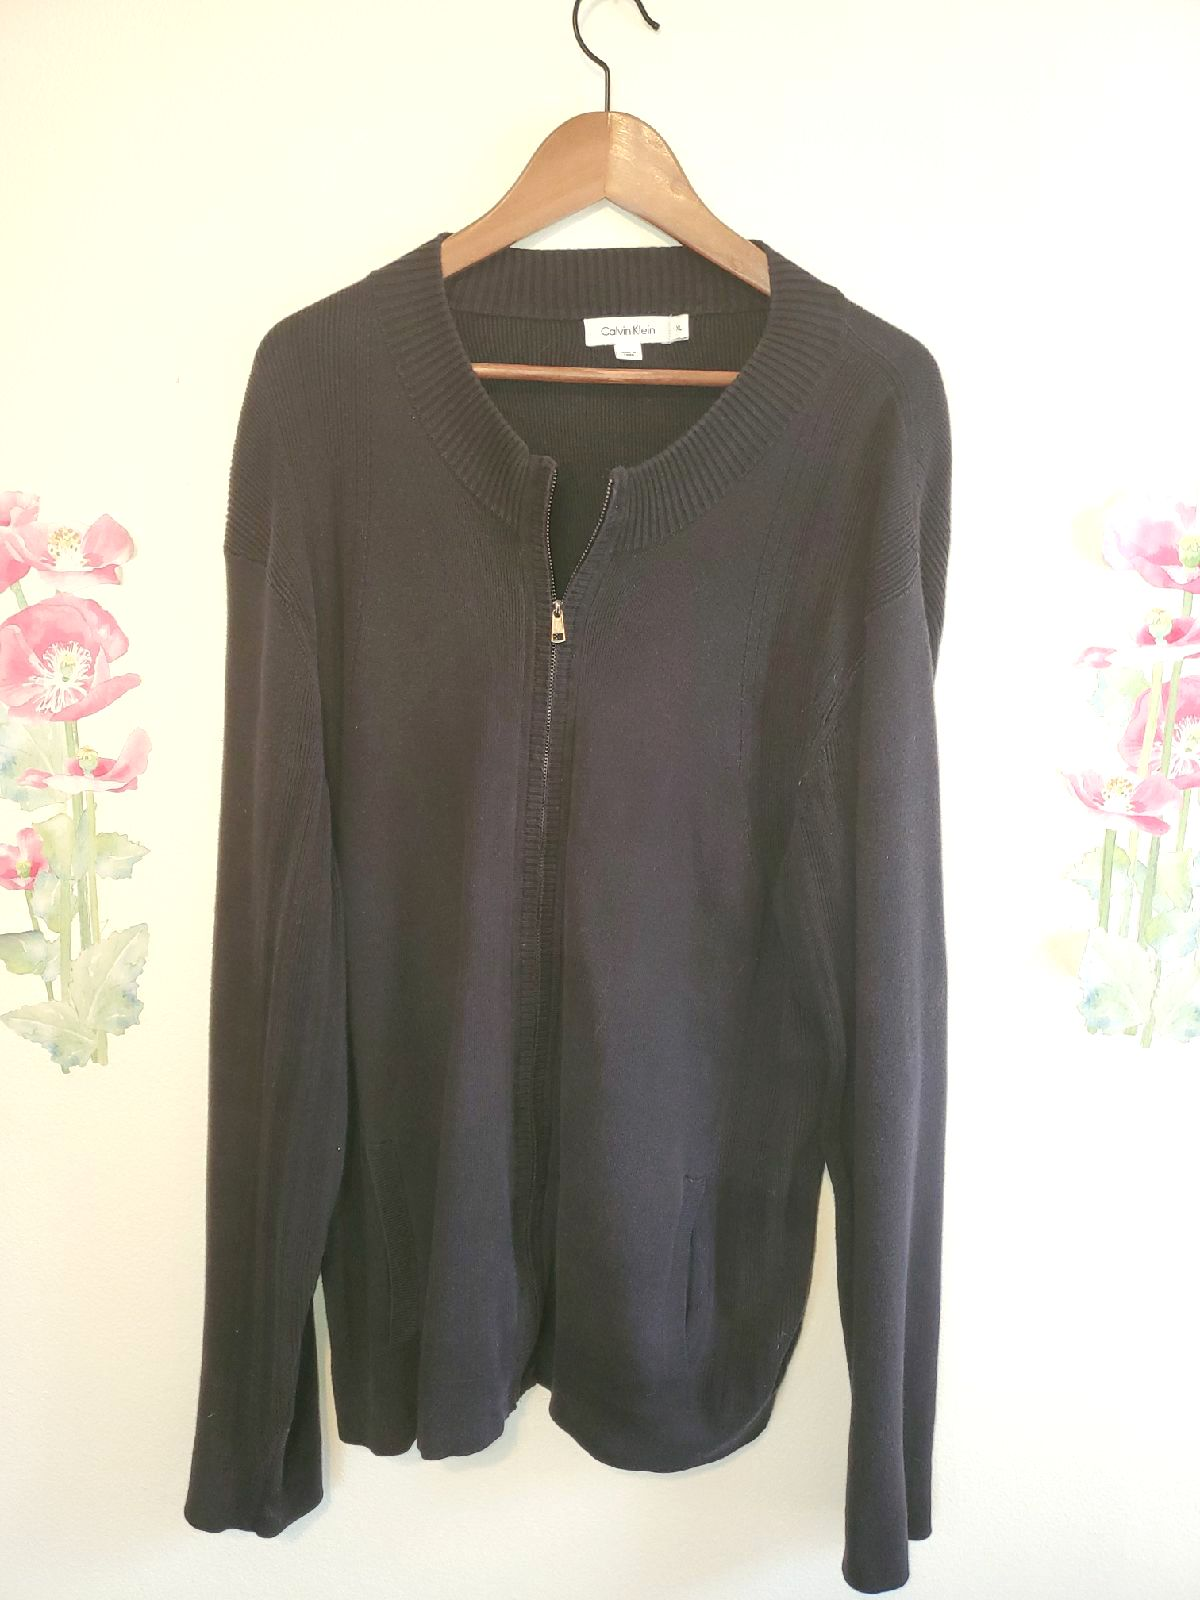 Black Cardigan with Silver Accent/XL.